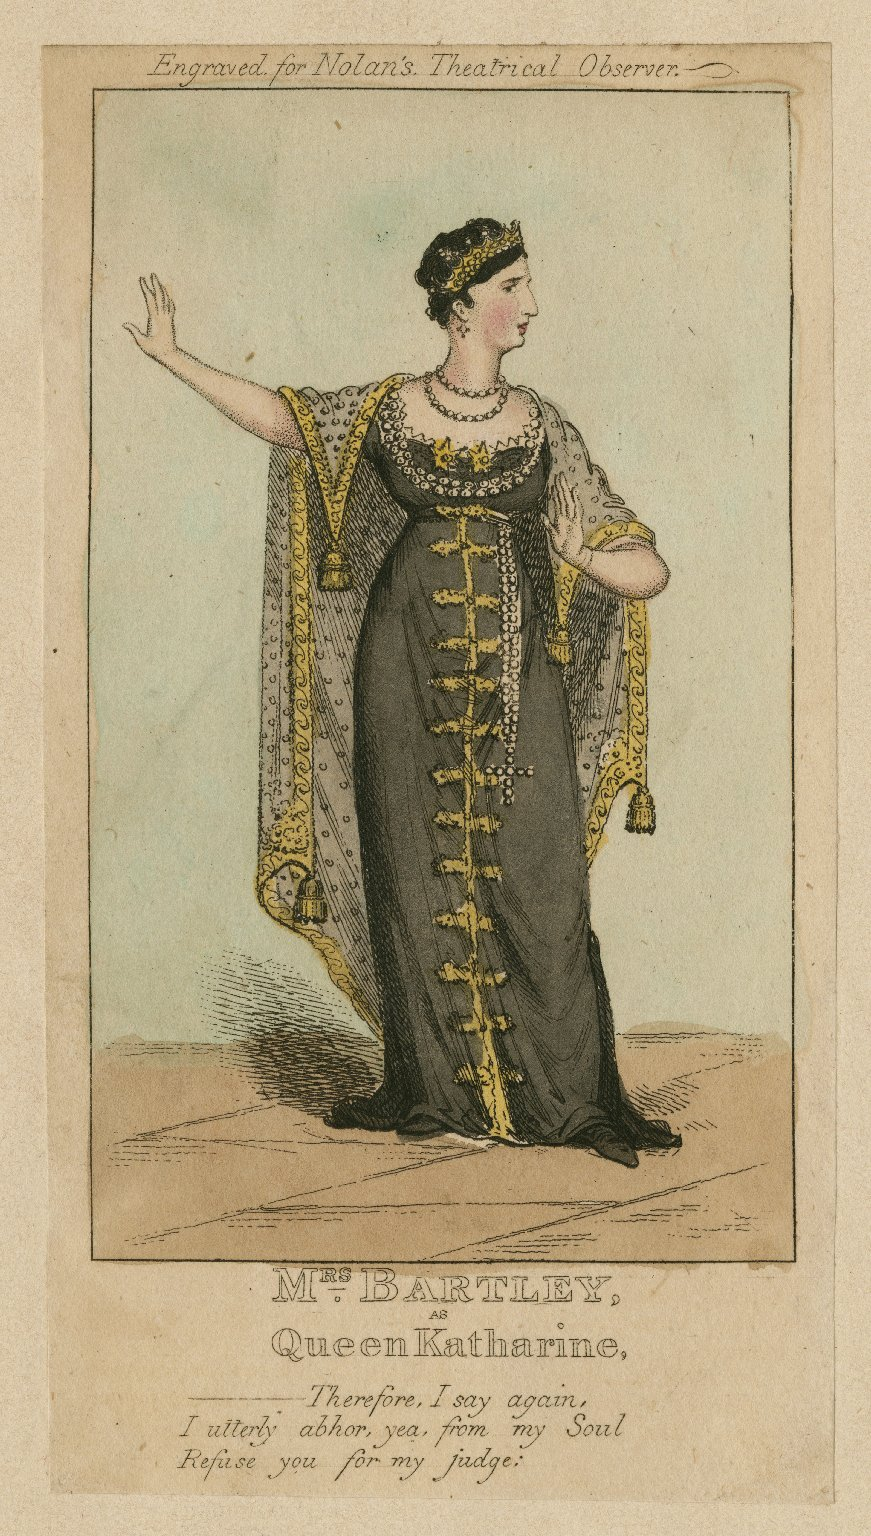 Mrs. Bartley as Queen Katharine [in Shakespeare's Henry VIII]: Therefore I say again, I utterly abhor, yea from my Soul, Refuse you for my judge [graphic].